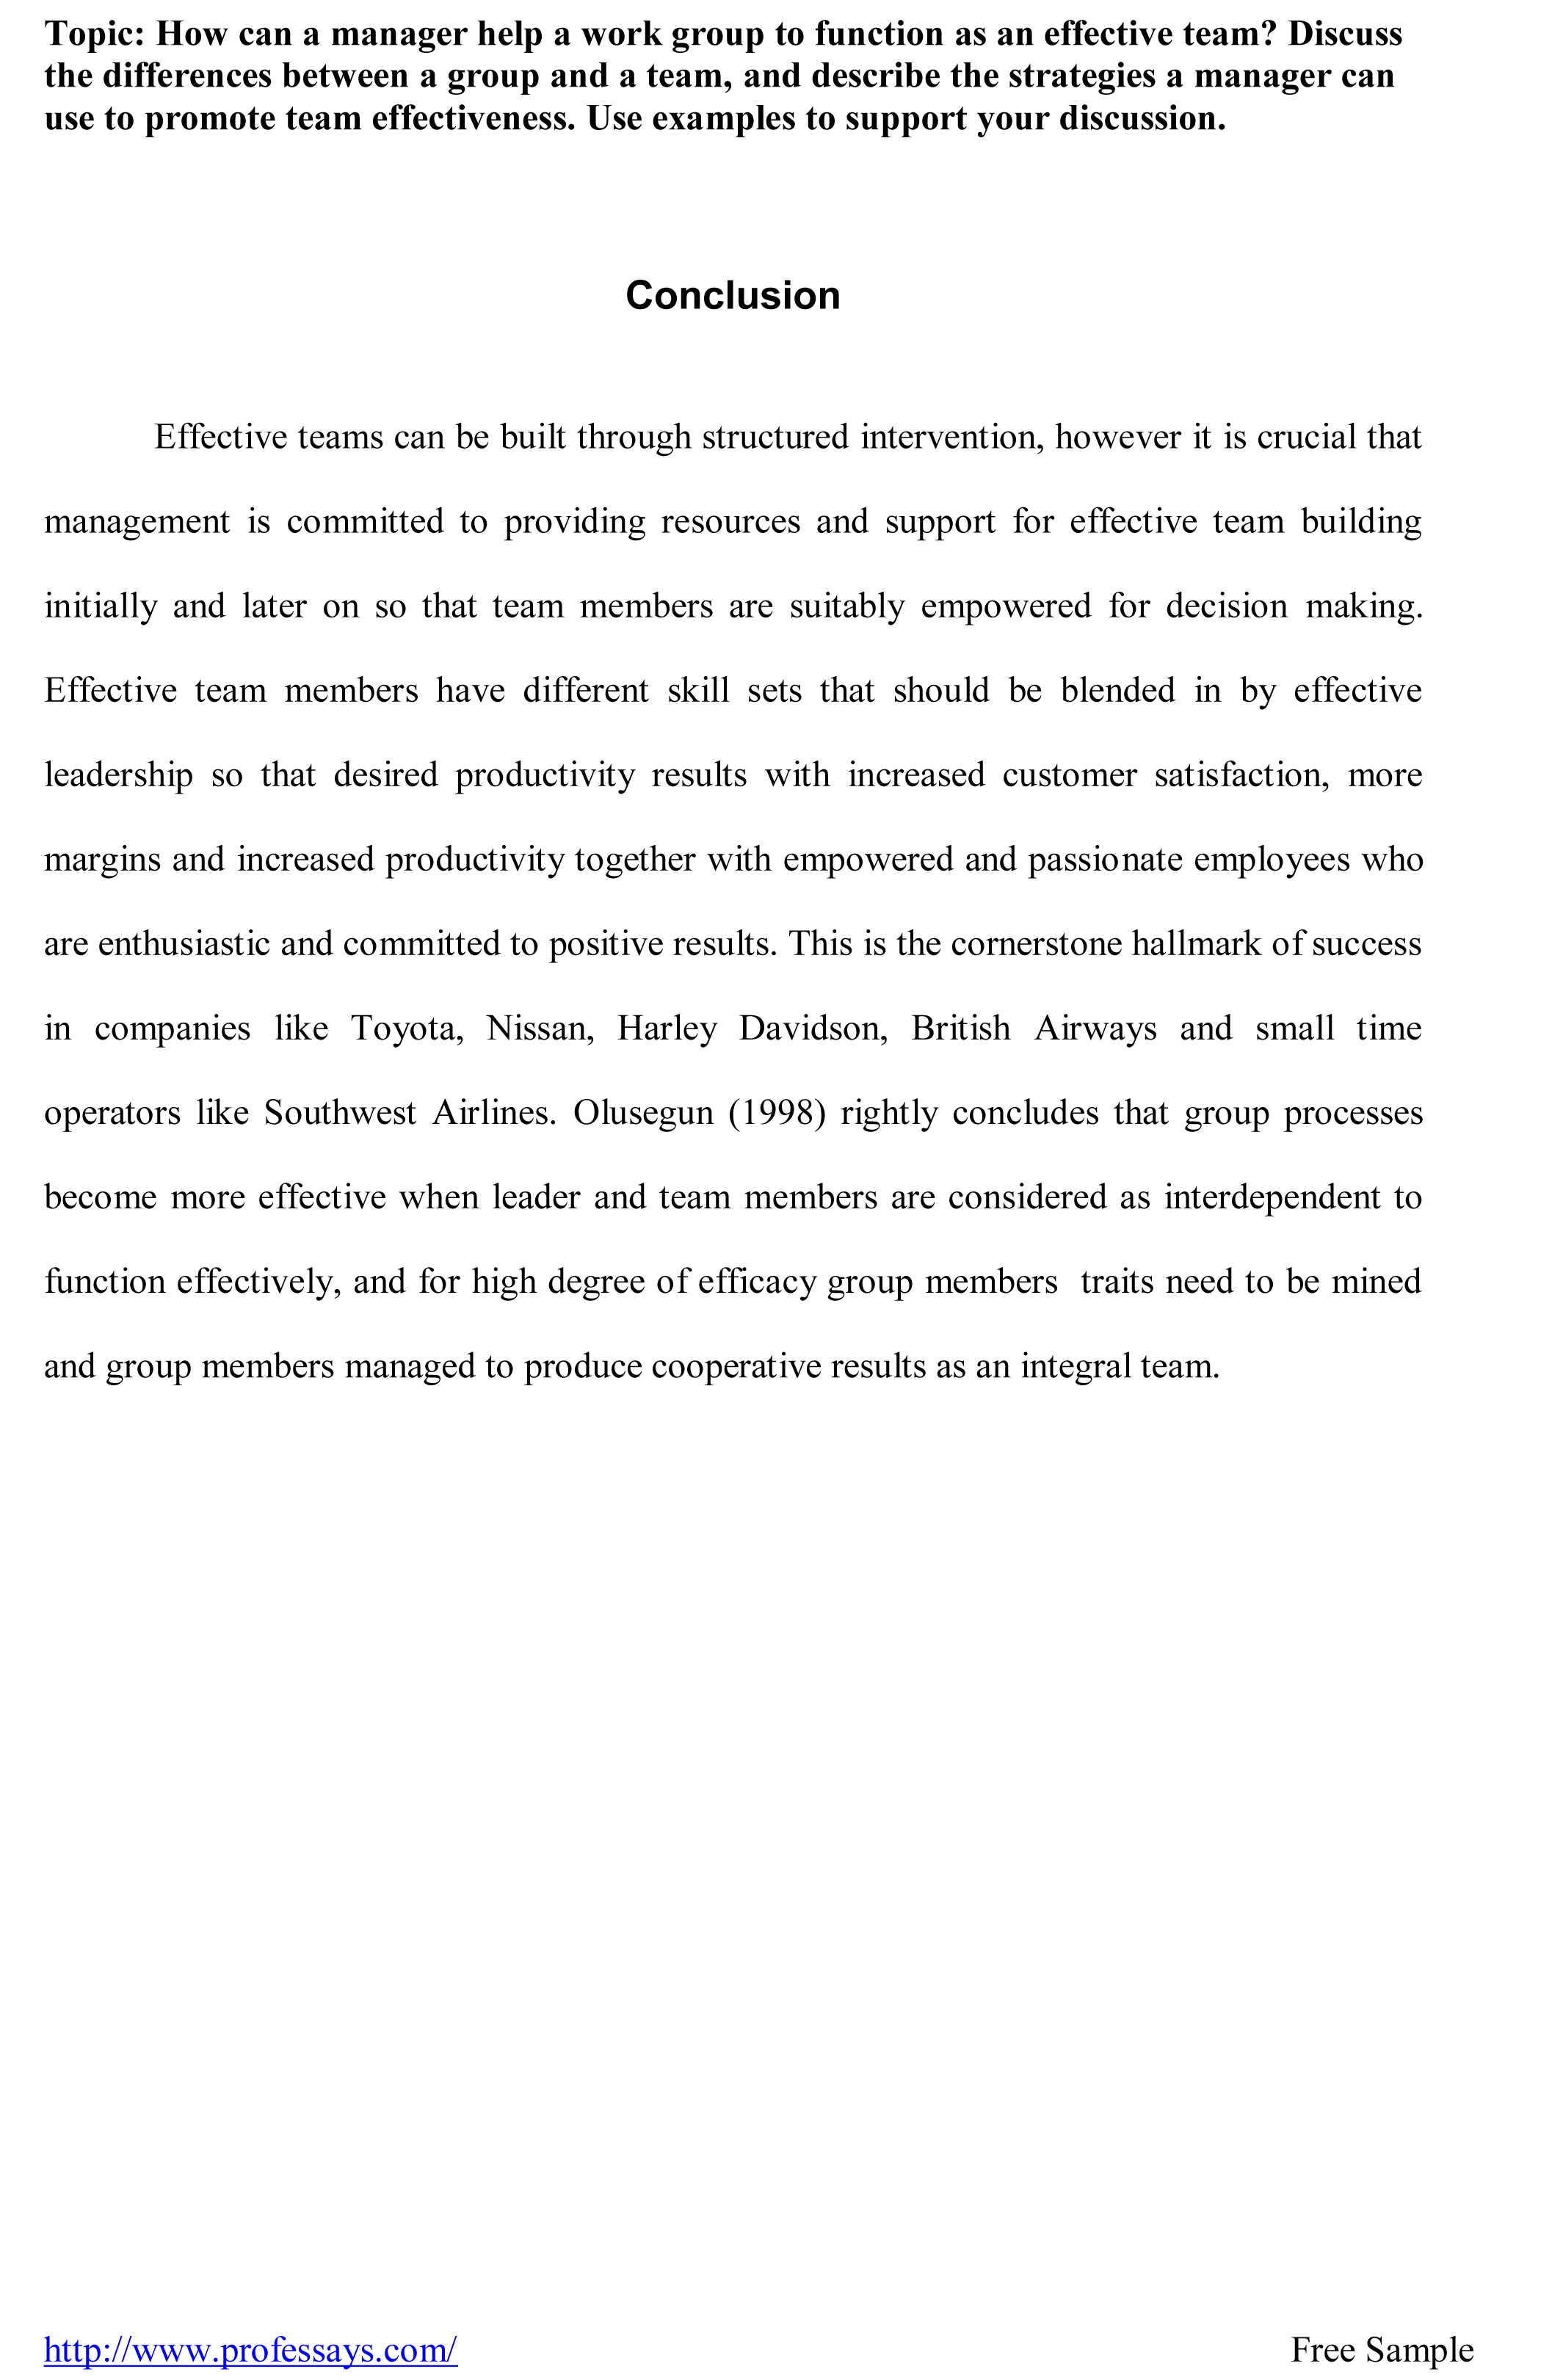 006 Need Help Writing Research Paper Conclusion Sample For Rare My Full